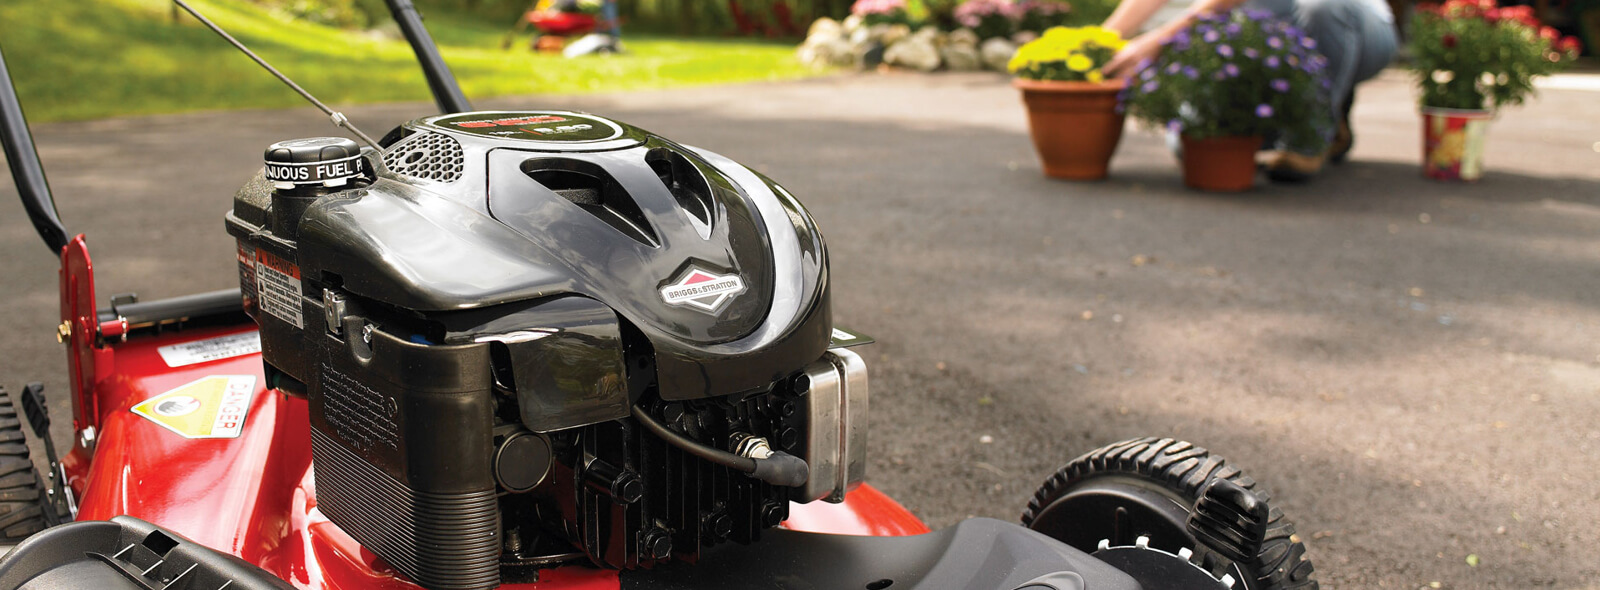 hight resolution of briggs stratton manual